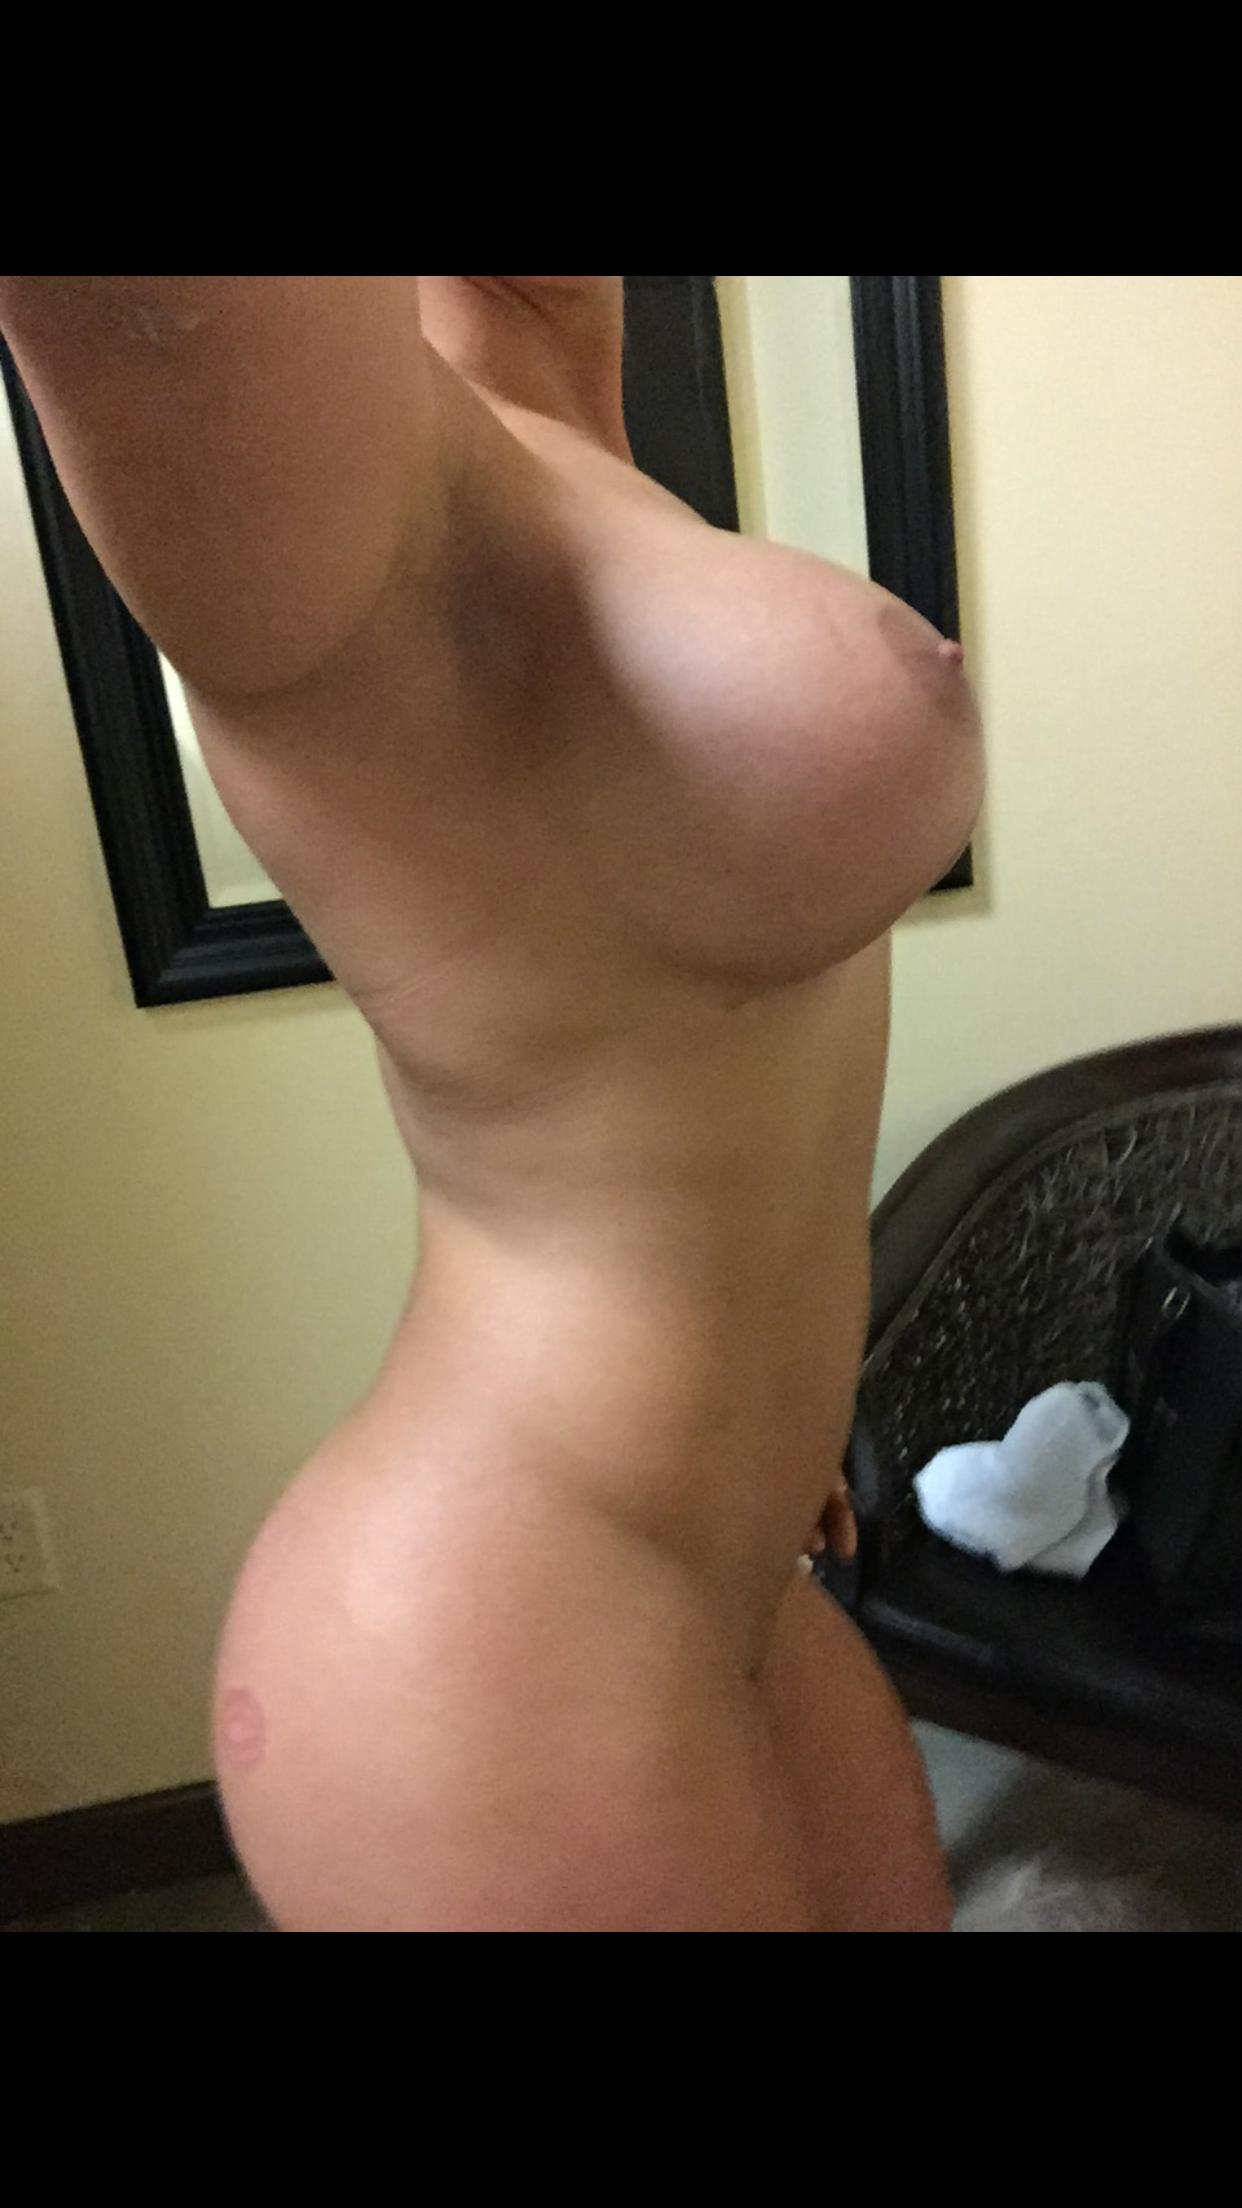 Kaitlyn hot and naked #6